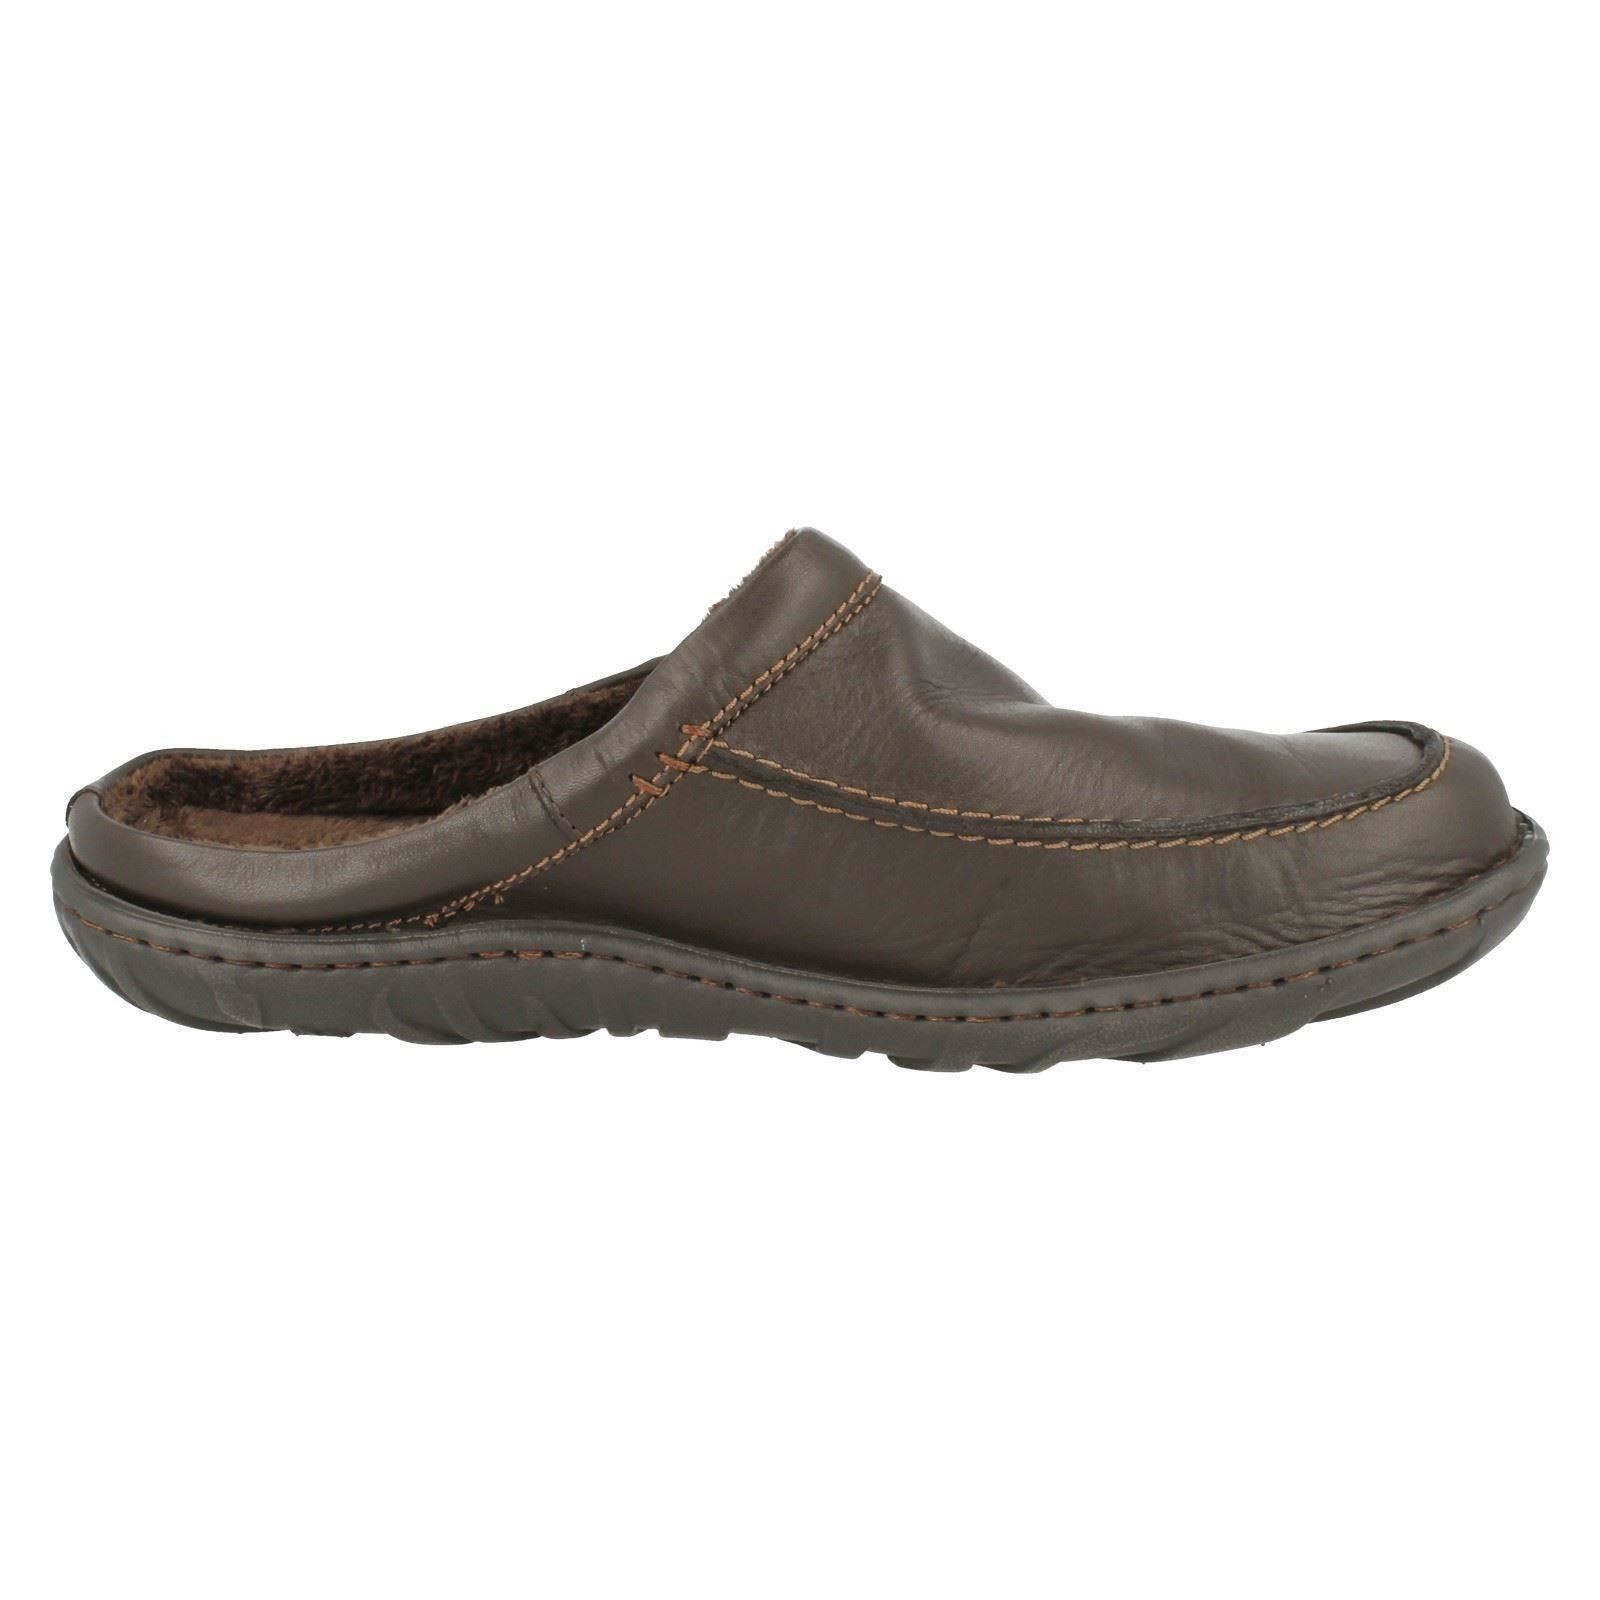 Clarks House Shoes